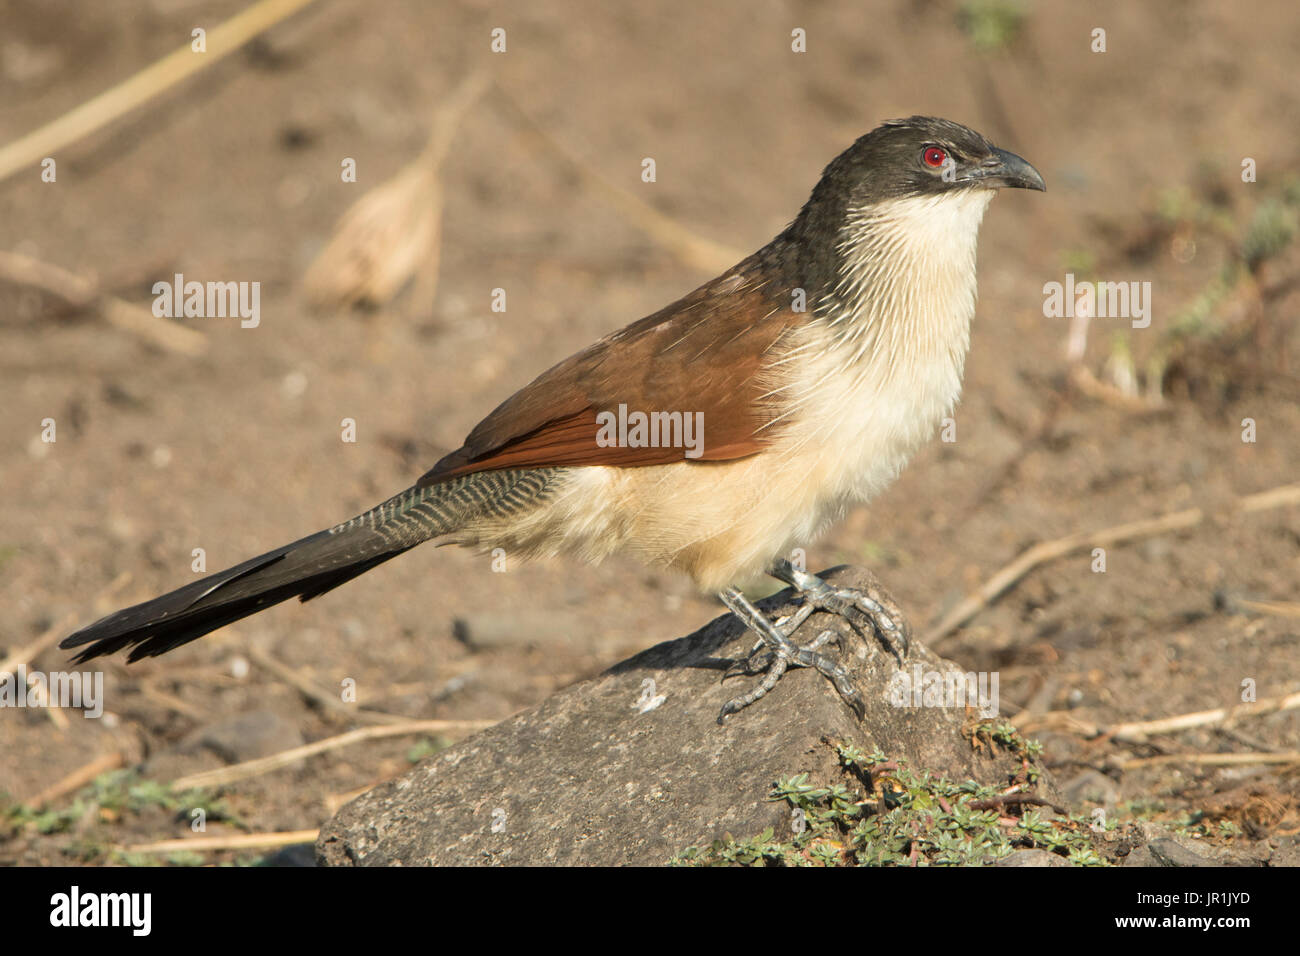 White-browed Coucal (Centropus superciliosus) on ground, Kruger NP, South Africa - Stock Image